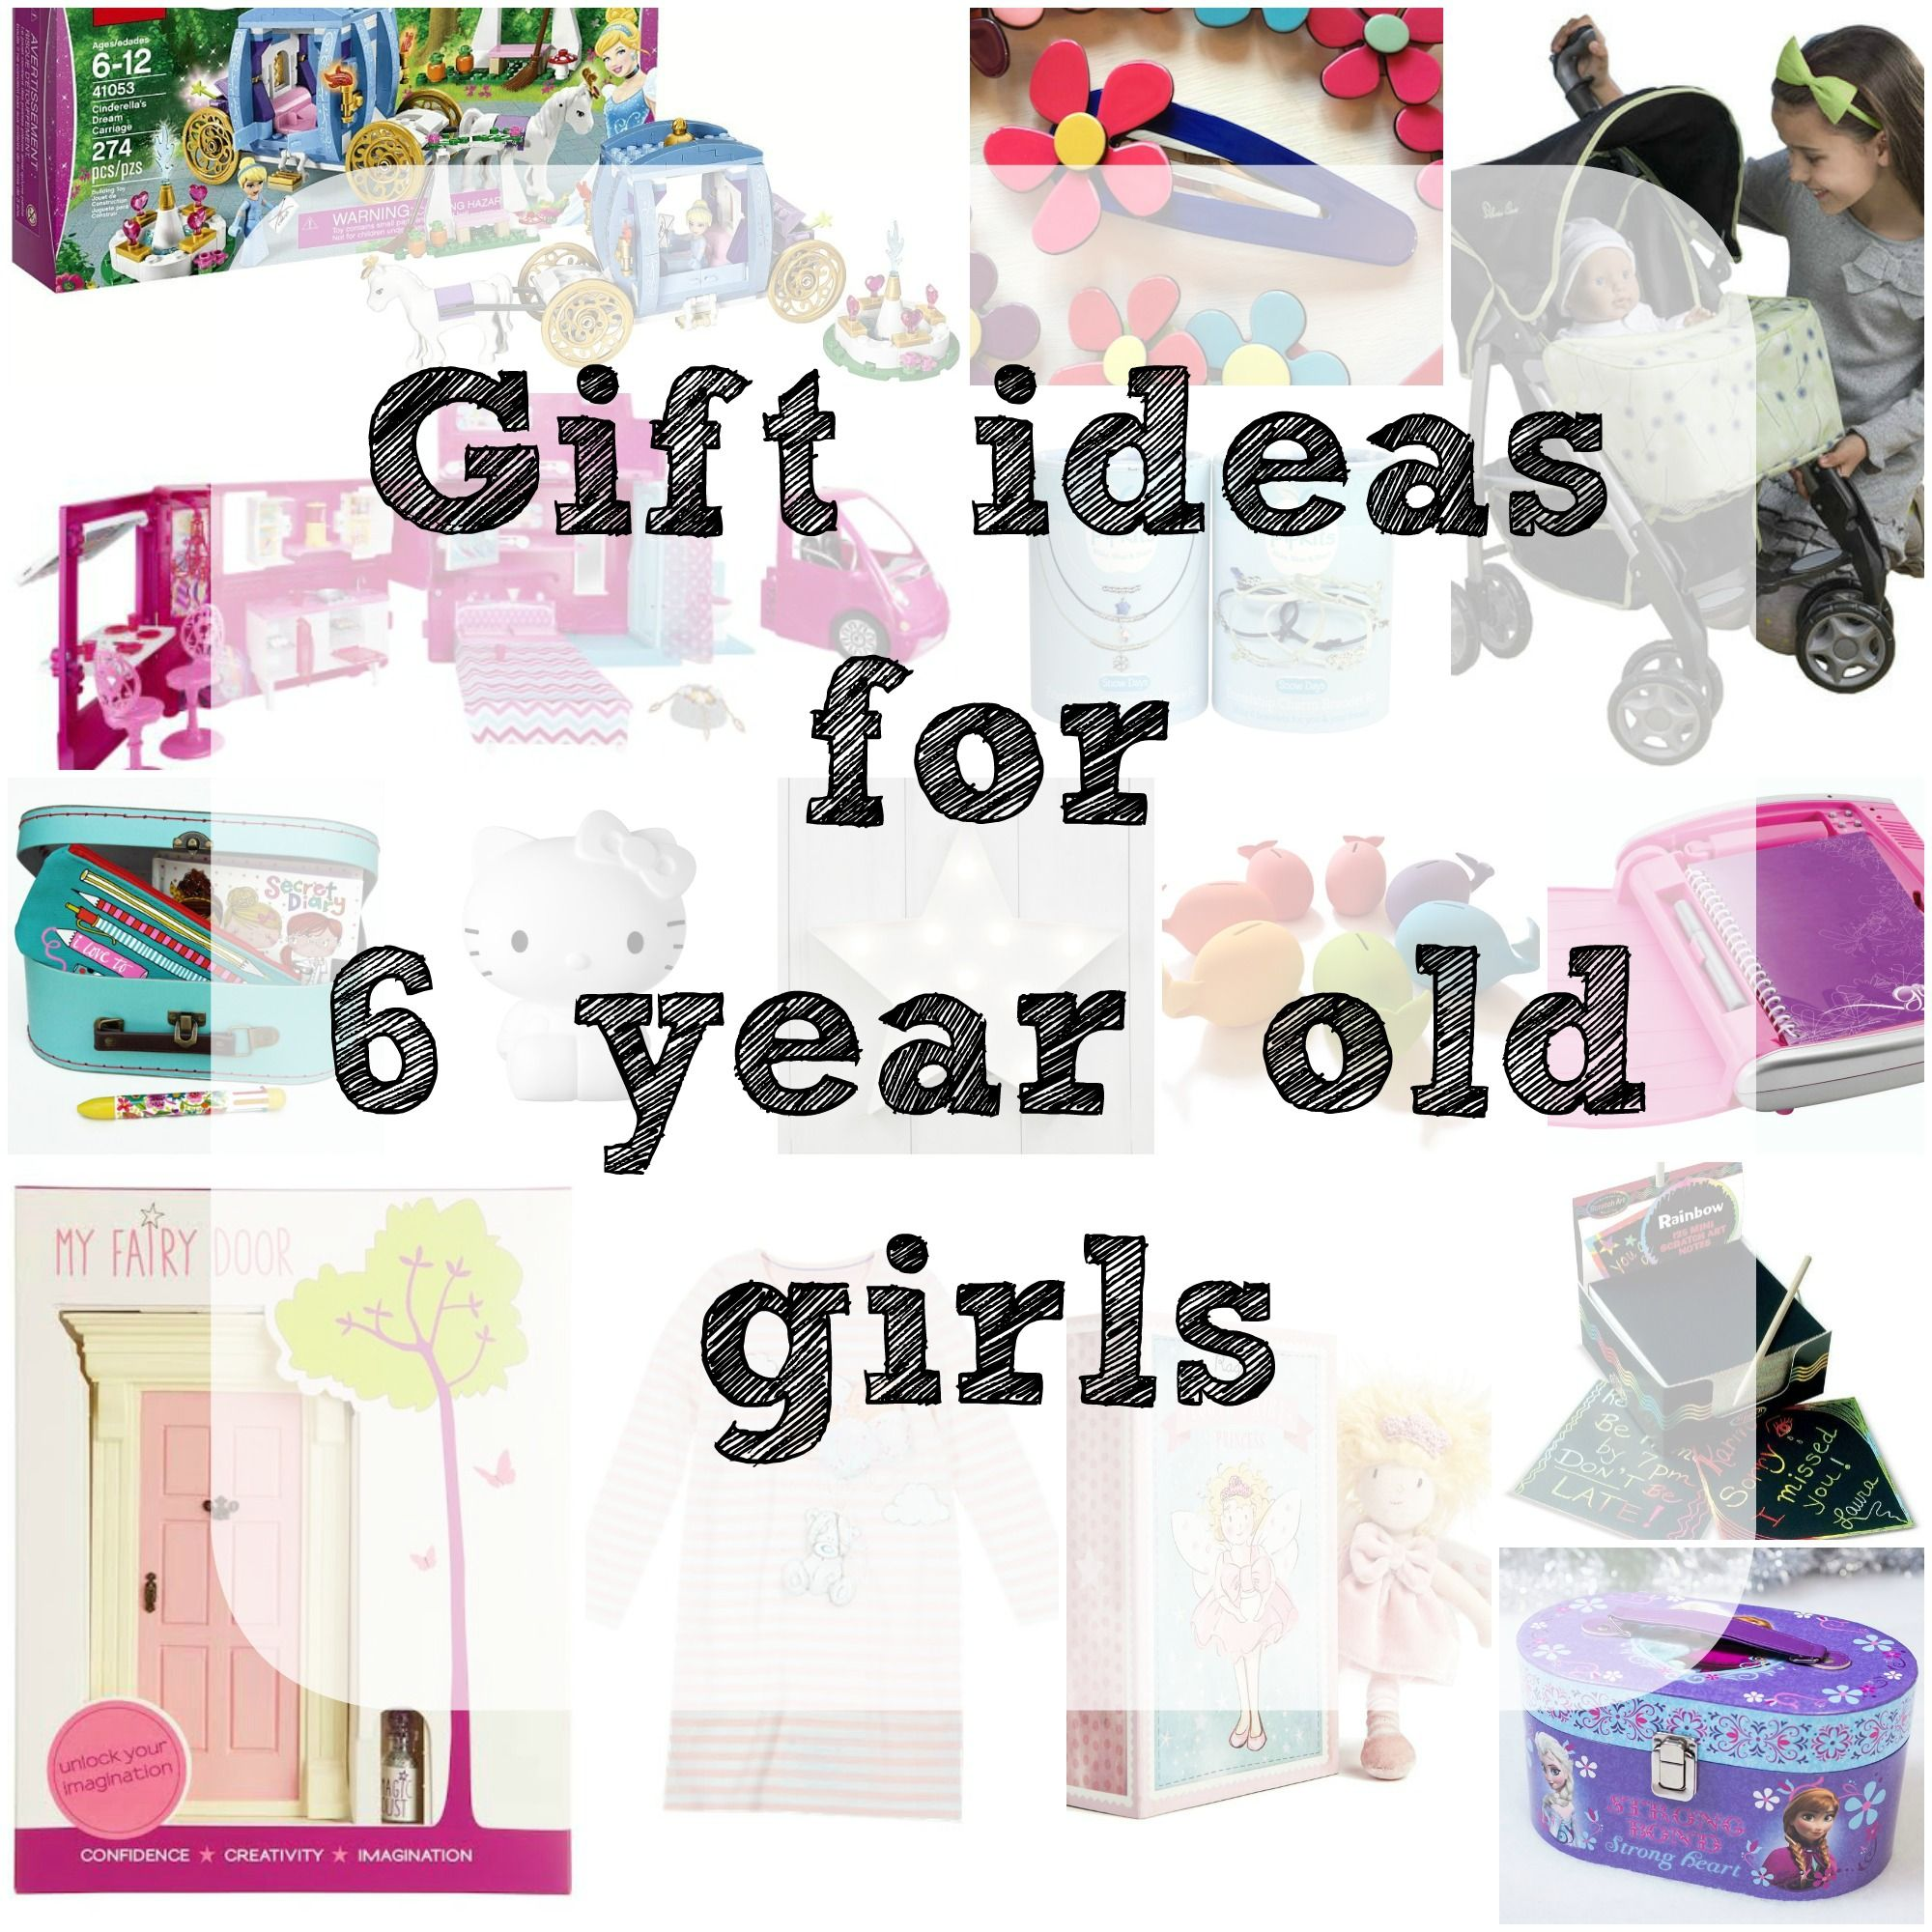 Gift ideas for girls age 6 need some inspiration for a